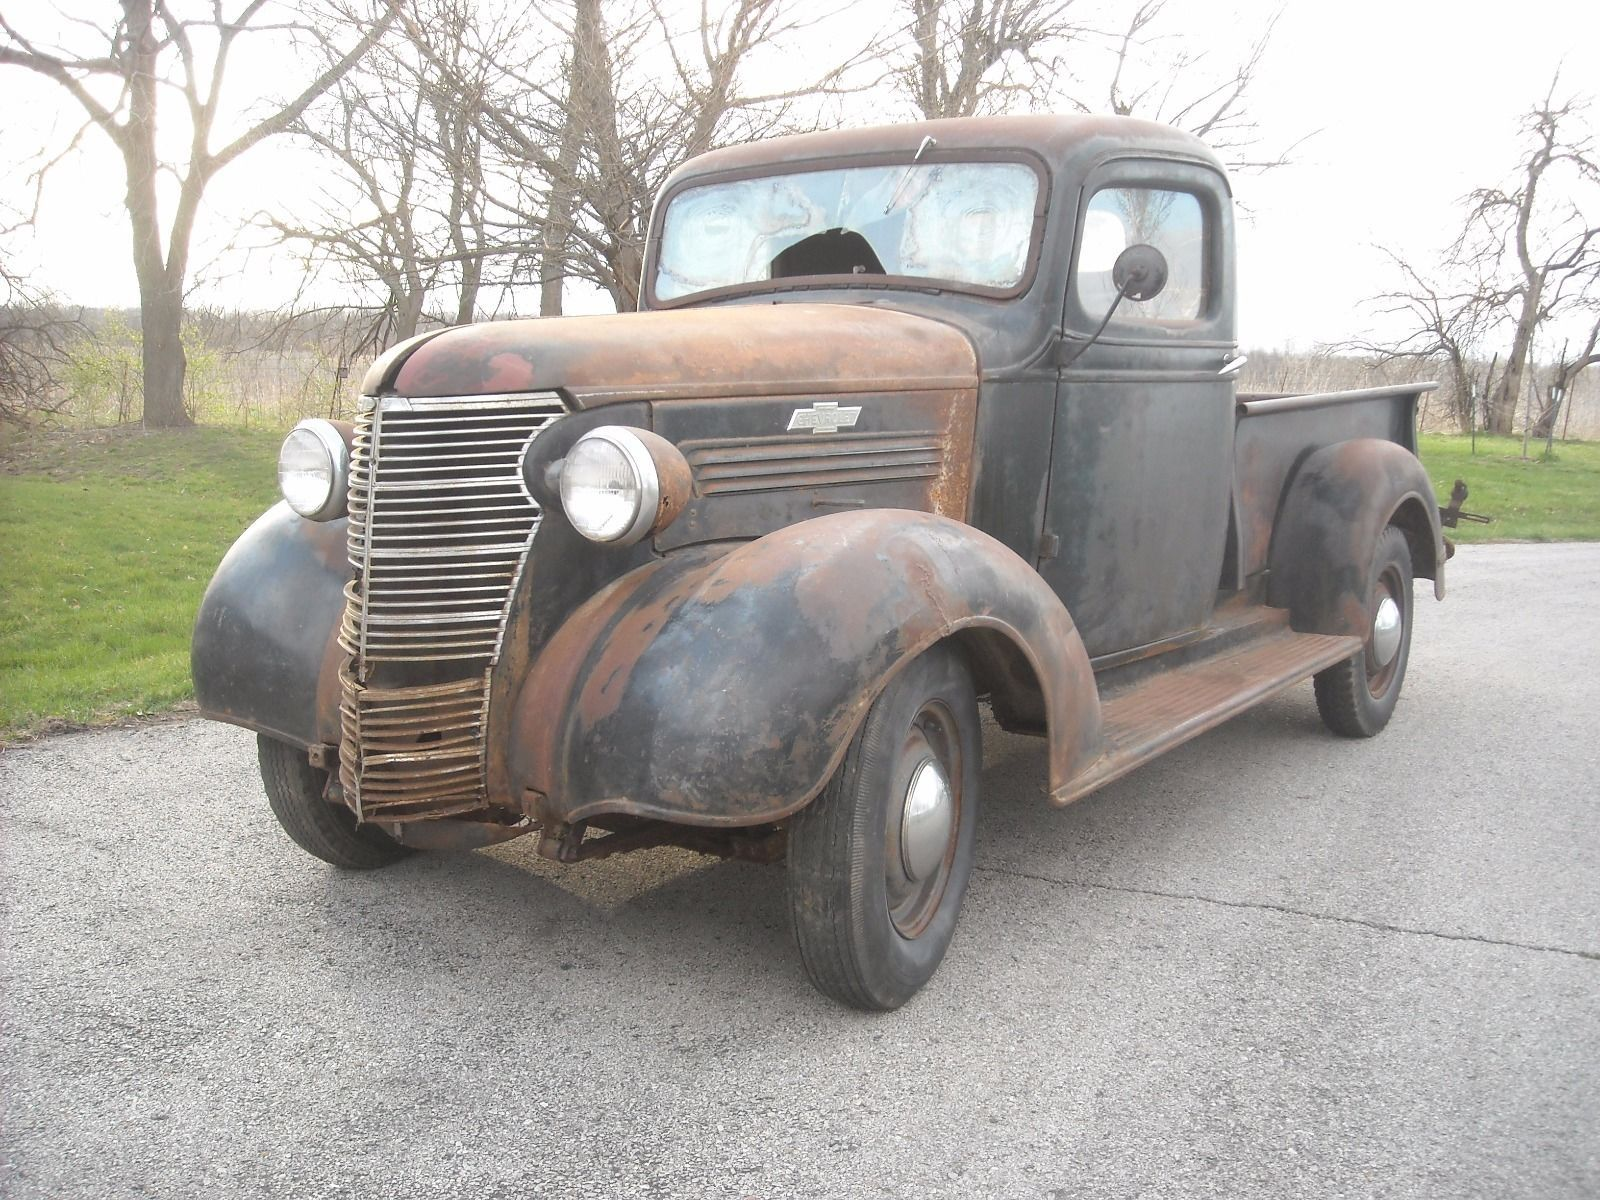 1937 Chevrolet 1 1/2 ton pickup | Chevrolet, Classic trucks and ...